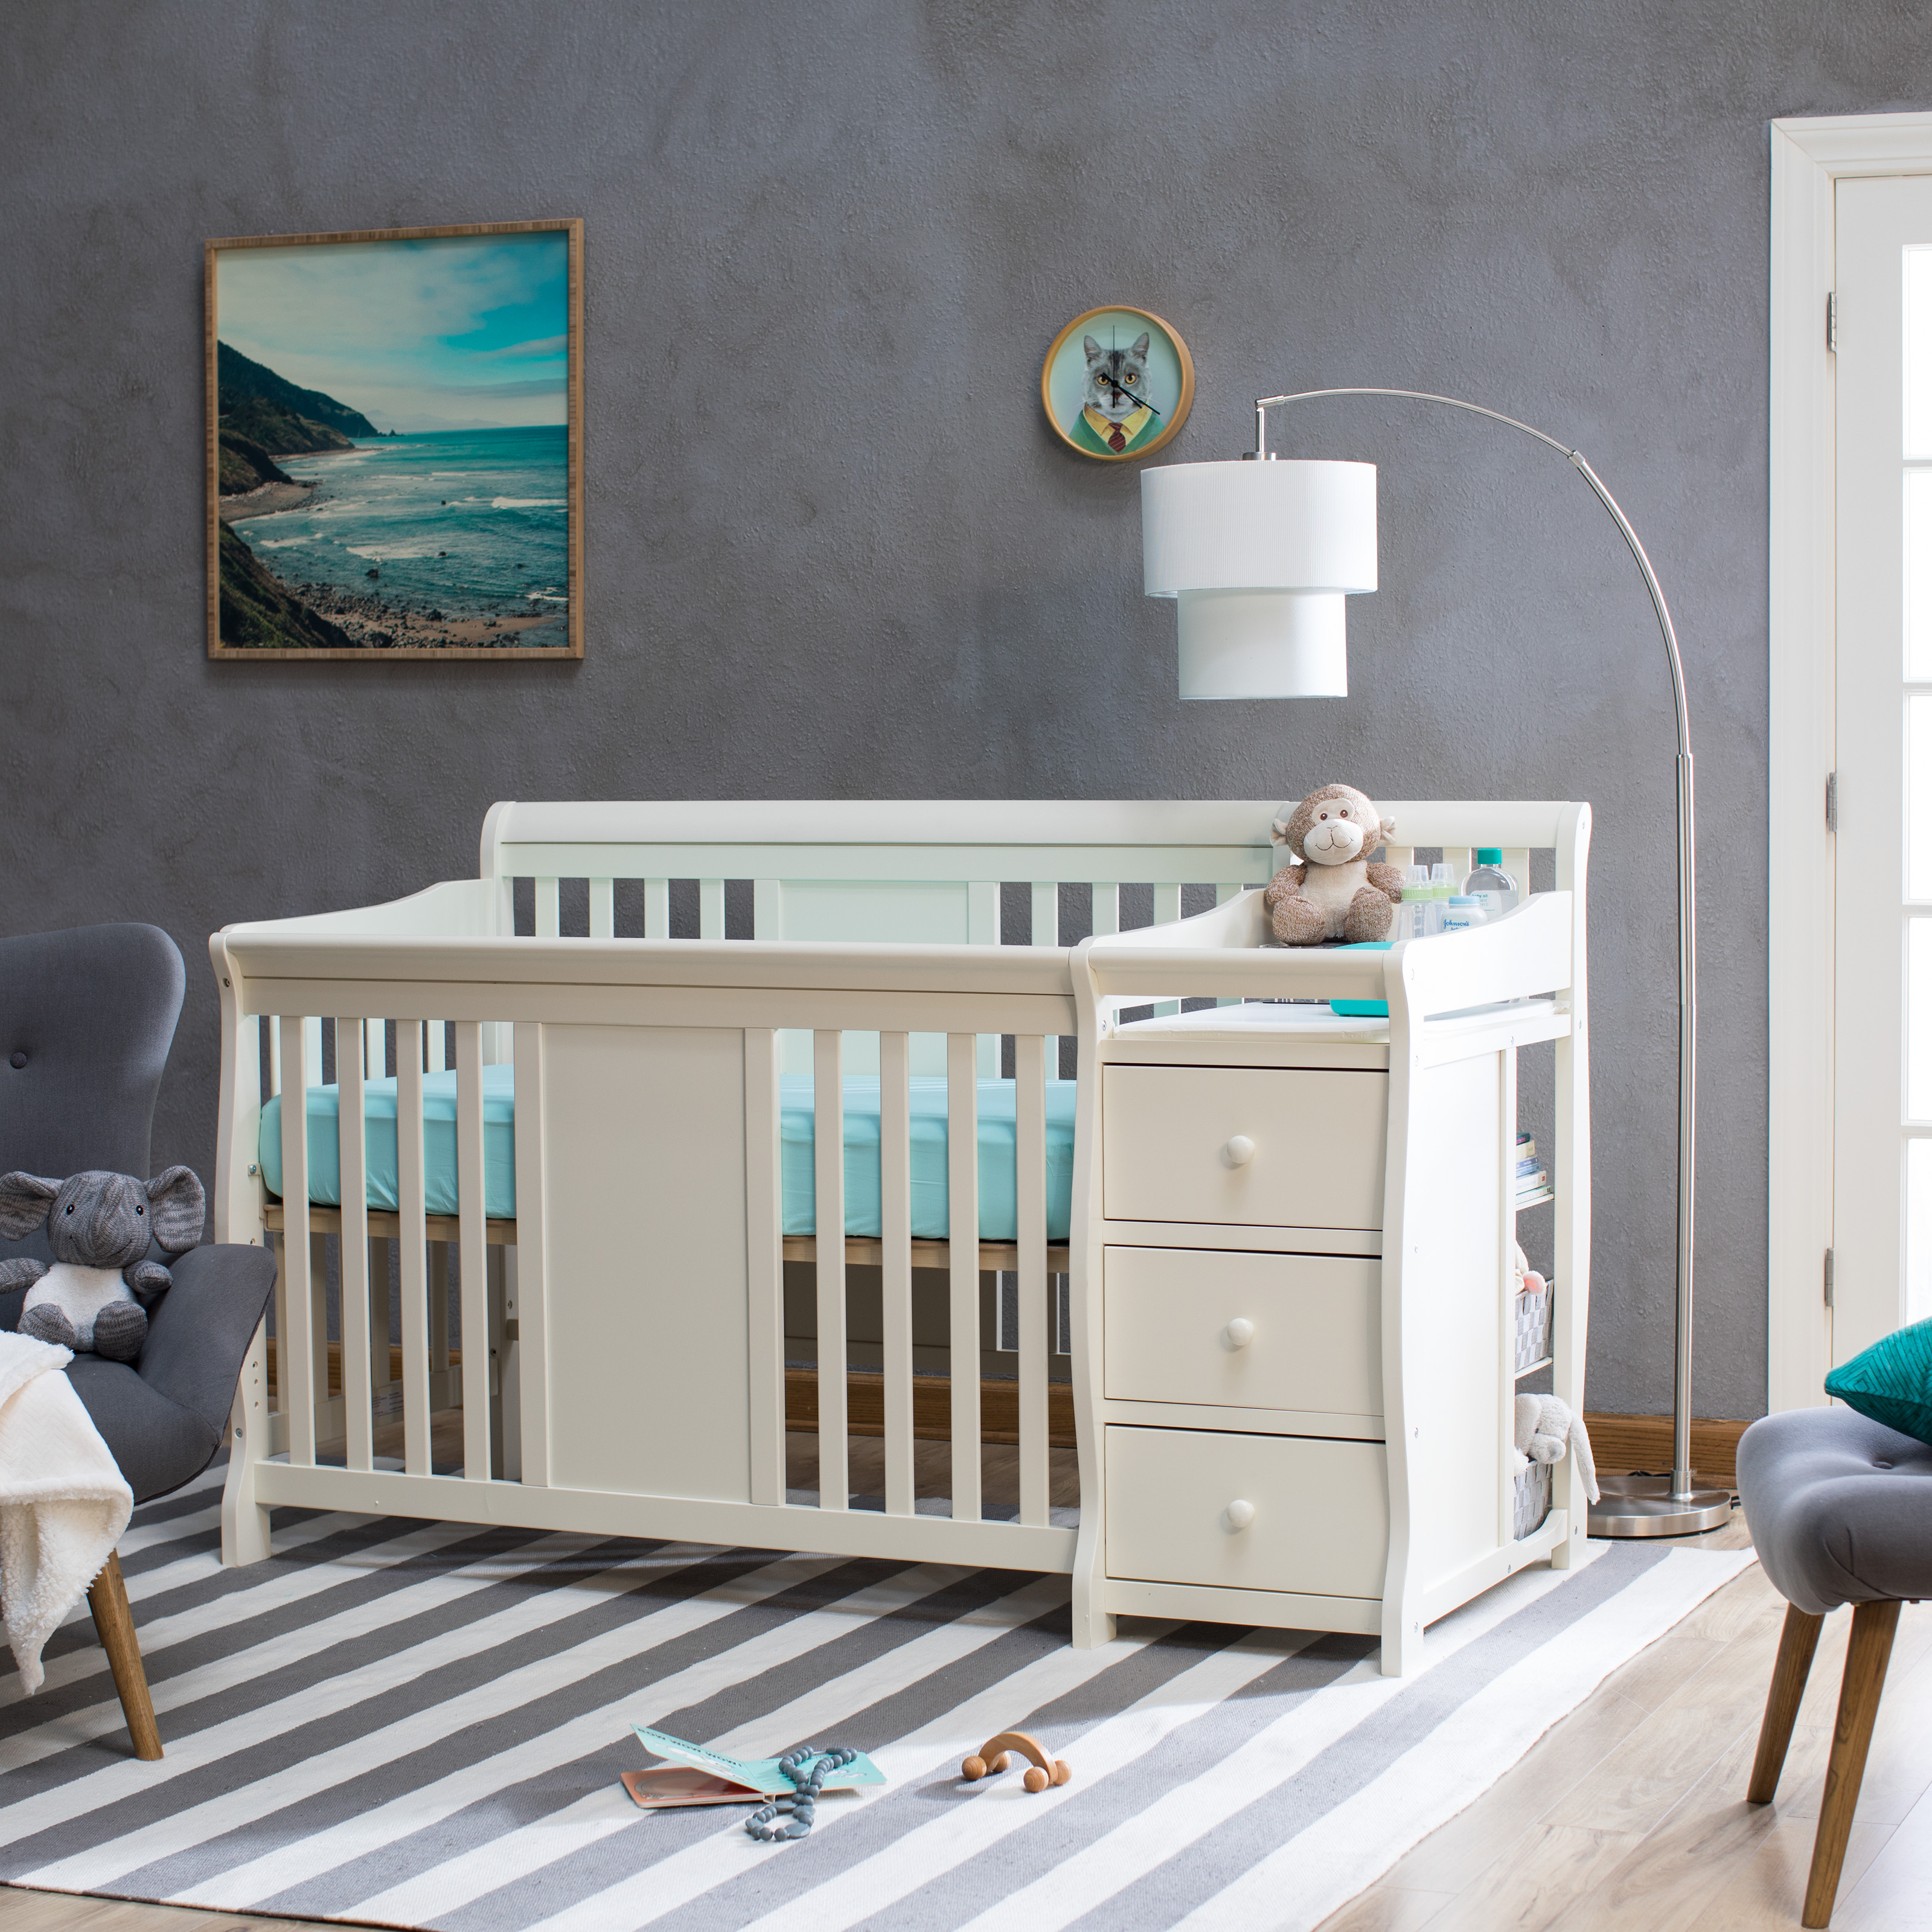 Baby cribs that attach to bed - Baby Cribs That Attach To Bed 23